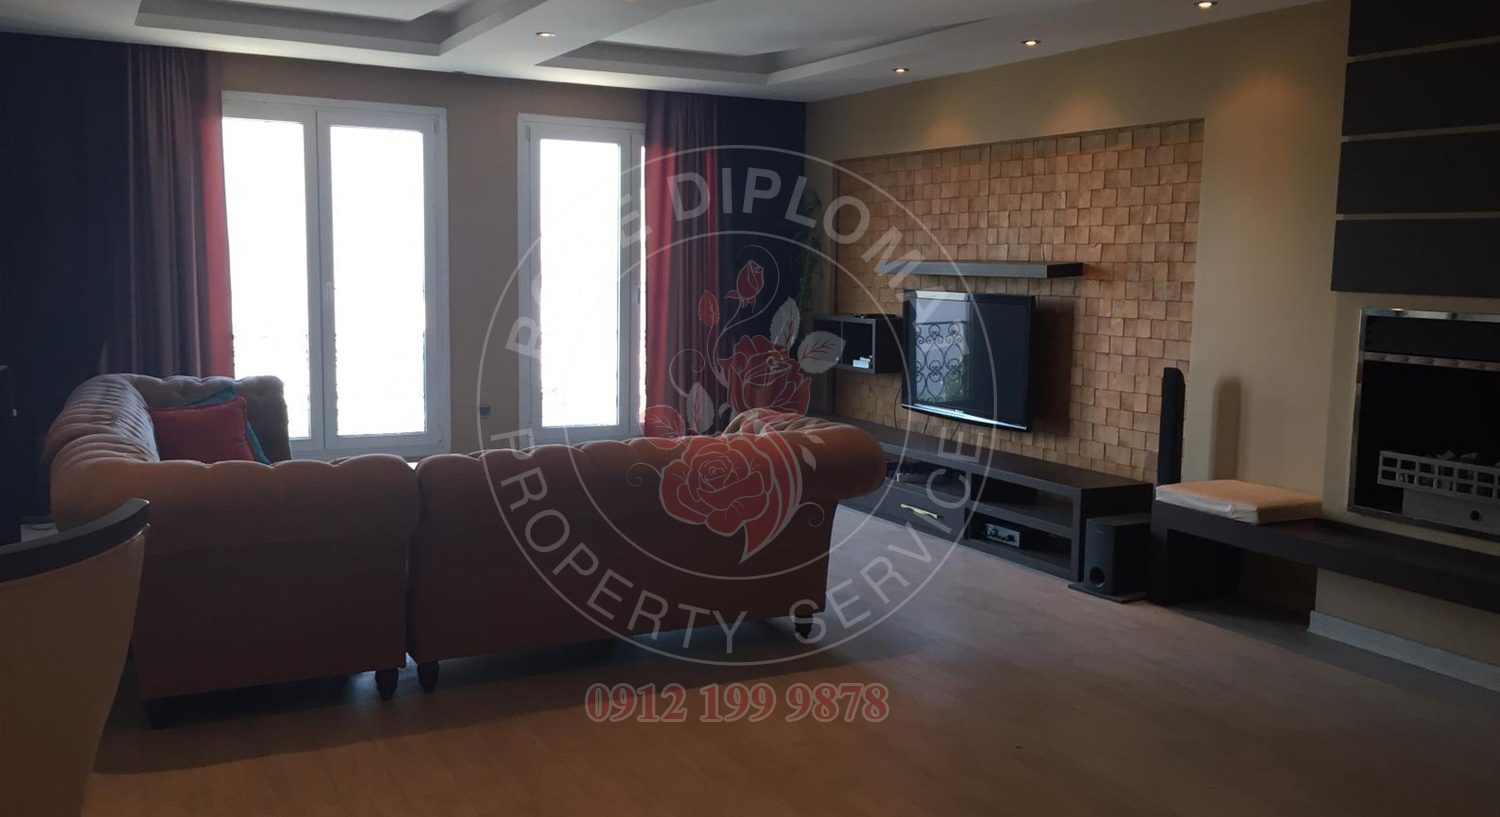 Rent Apartment in ajoodaniyeh